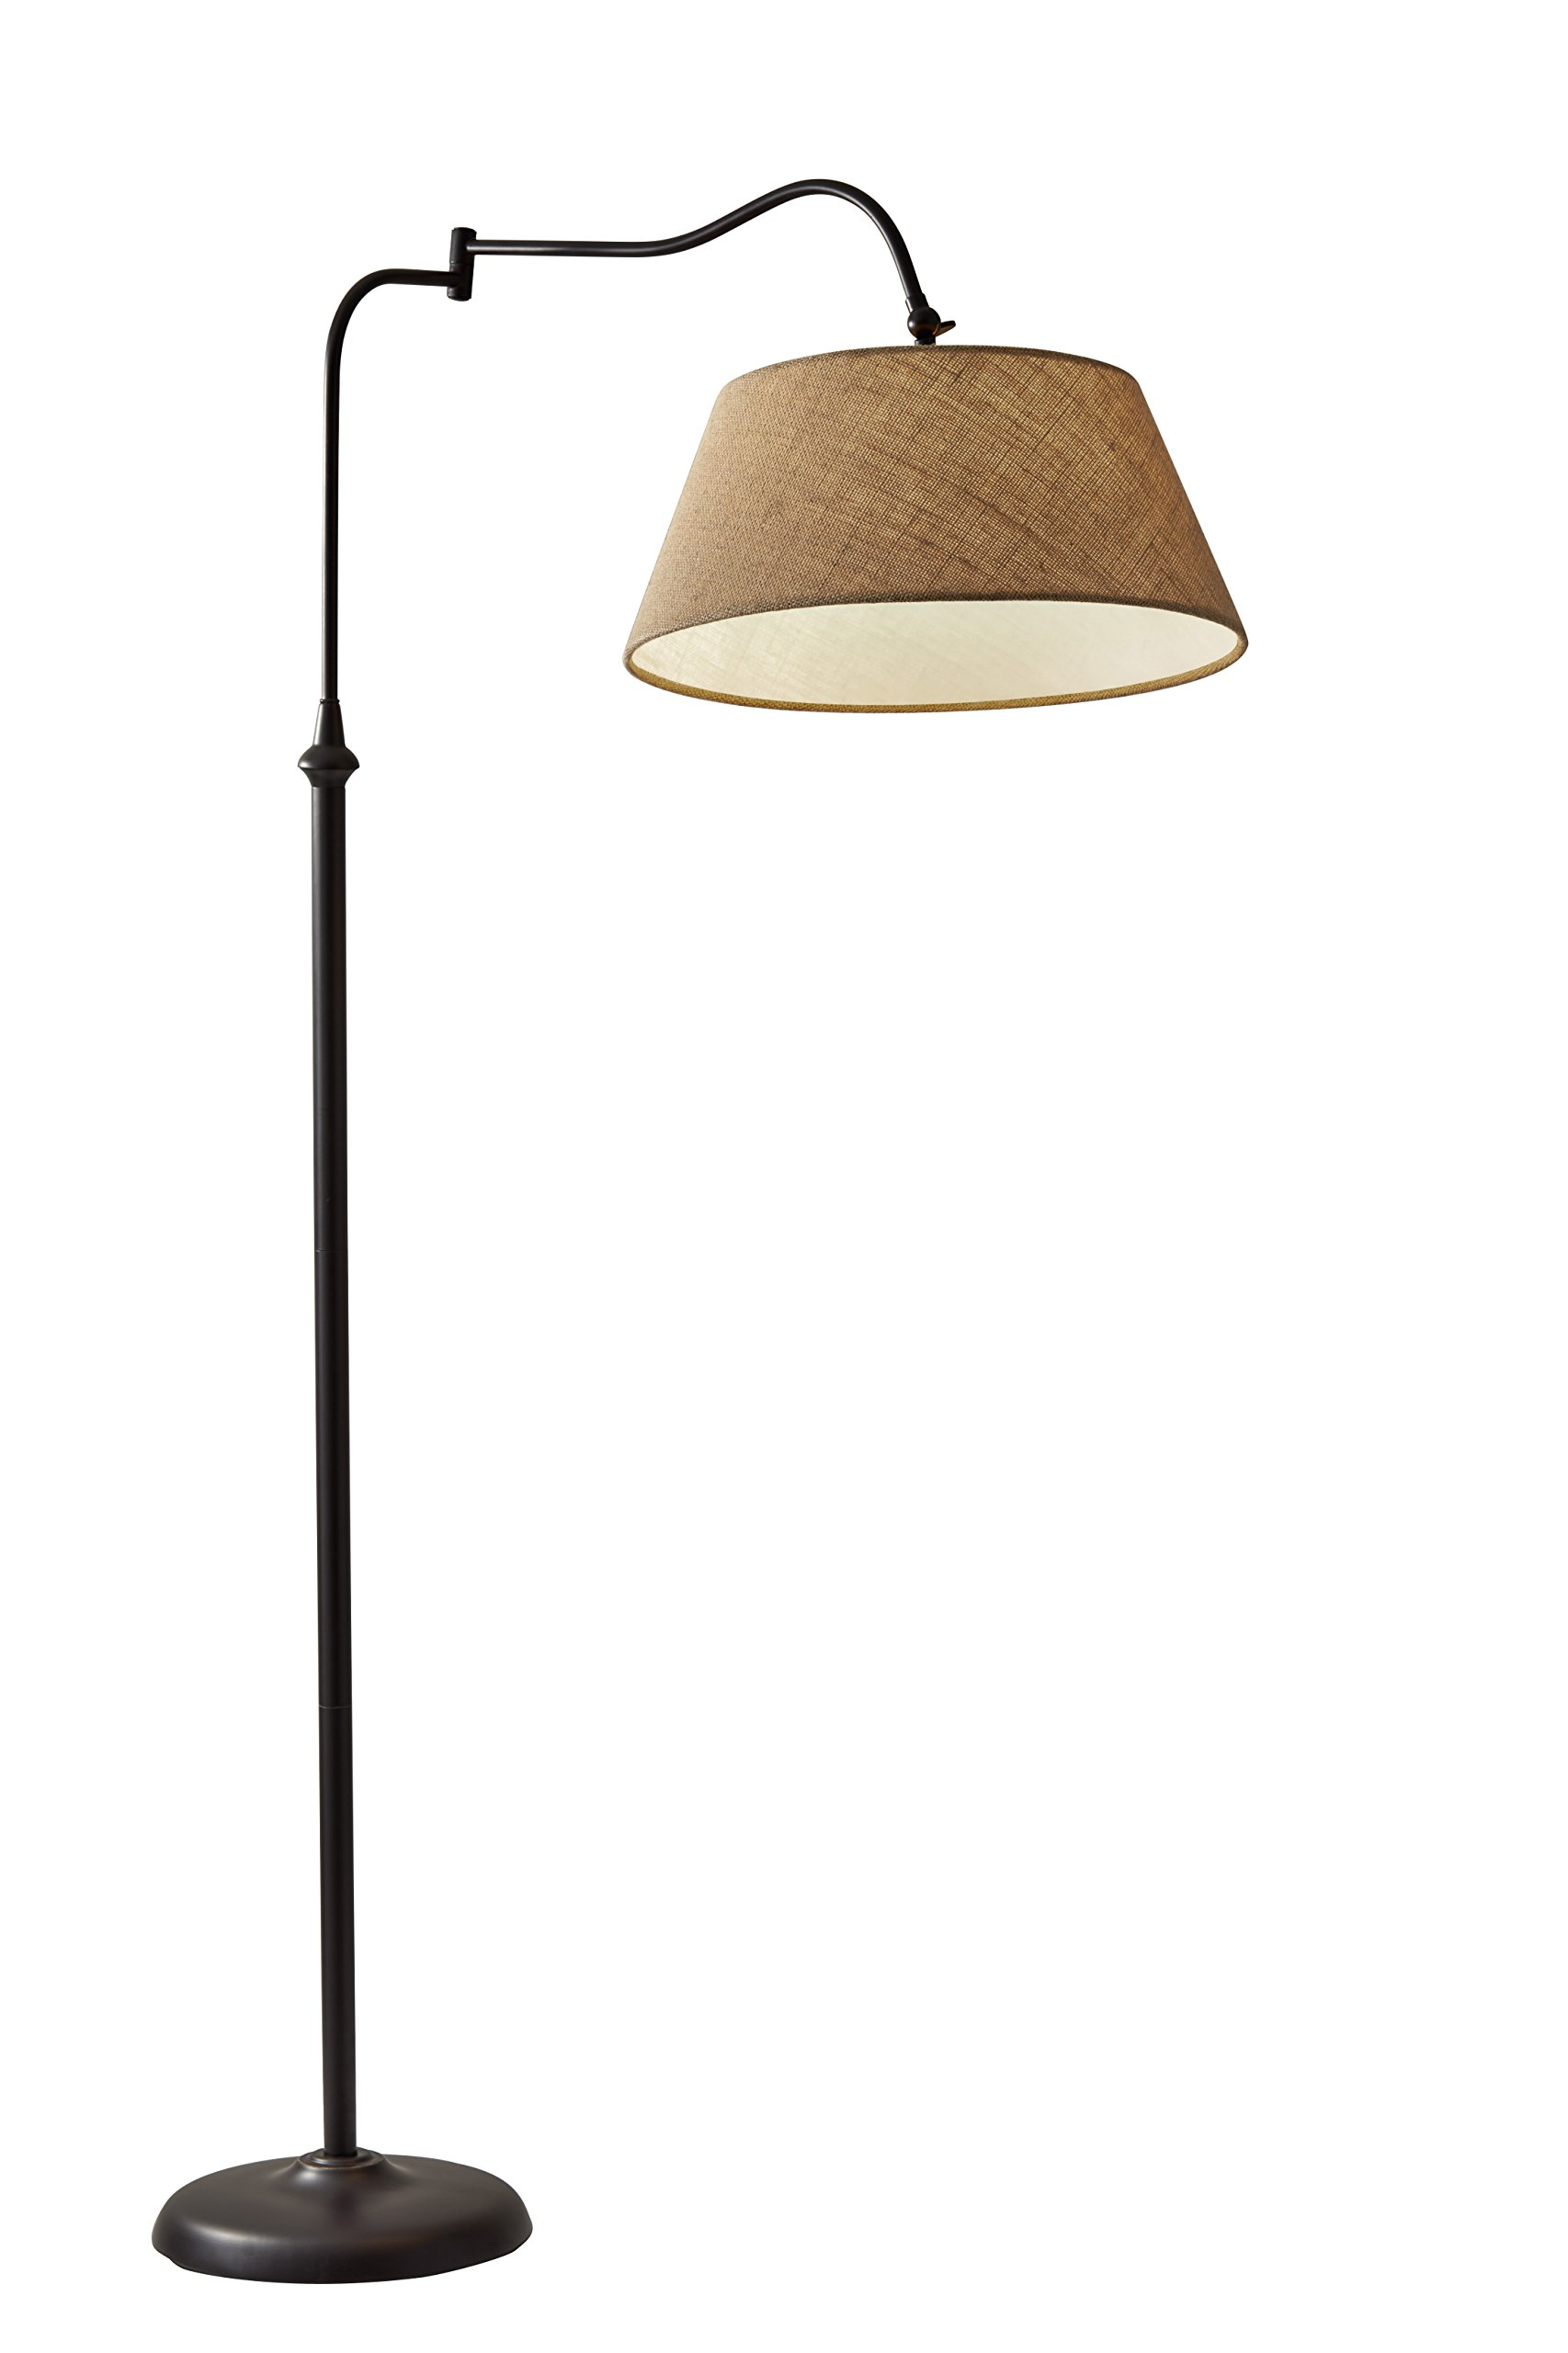 """Adesso 3349-26 Transitional Rodeo, Floor Lamp, 61"""" - The swing arm rotates 180º horizontally and the shades may be adjusted vertically and secured with a locking key joint A textured burlap fabric shade brings warmth to the design Smart Outlet Compatible - living-room-decor, living-room, floor-lamps - 71IjGc HaDL -"""